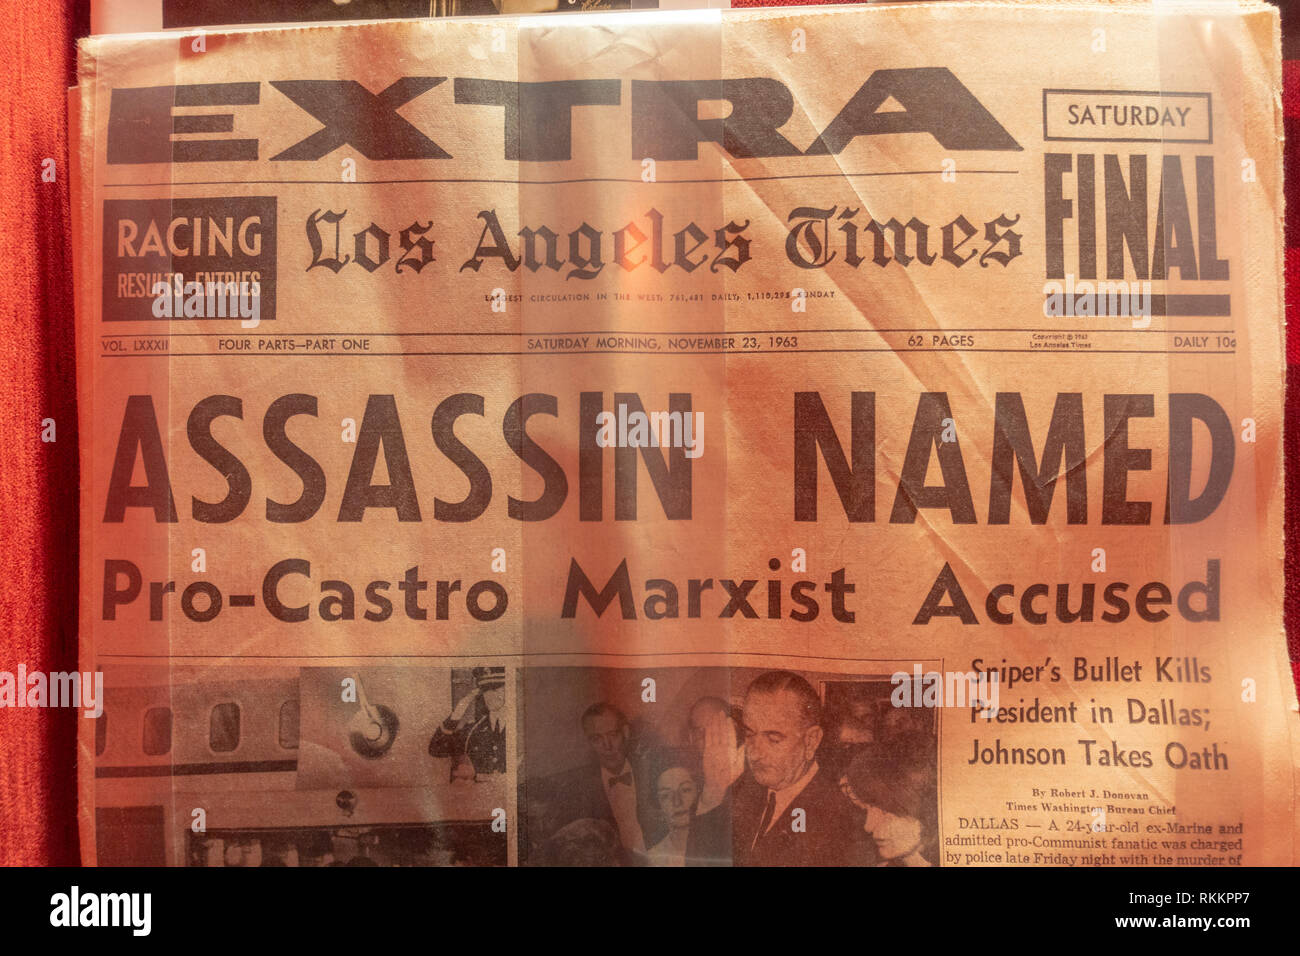 Los Angeles Times headline (23 November 1963) following the assassination of John F Kennedy, The Mob Museum, Las Vegas, Nevada, United States. - Stock Image